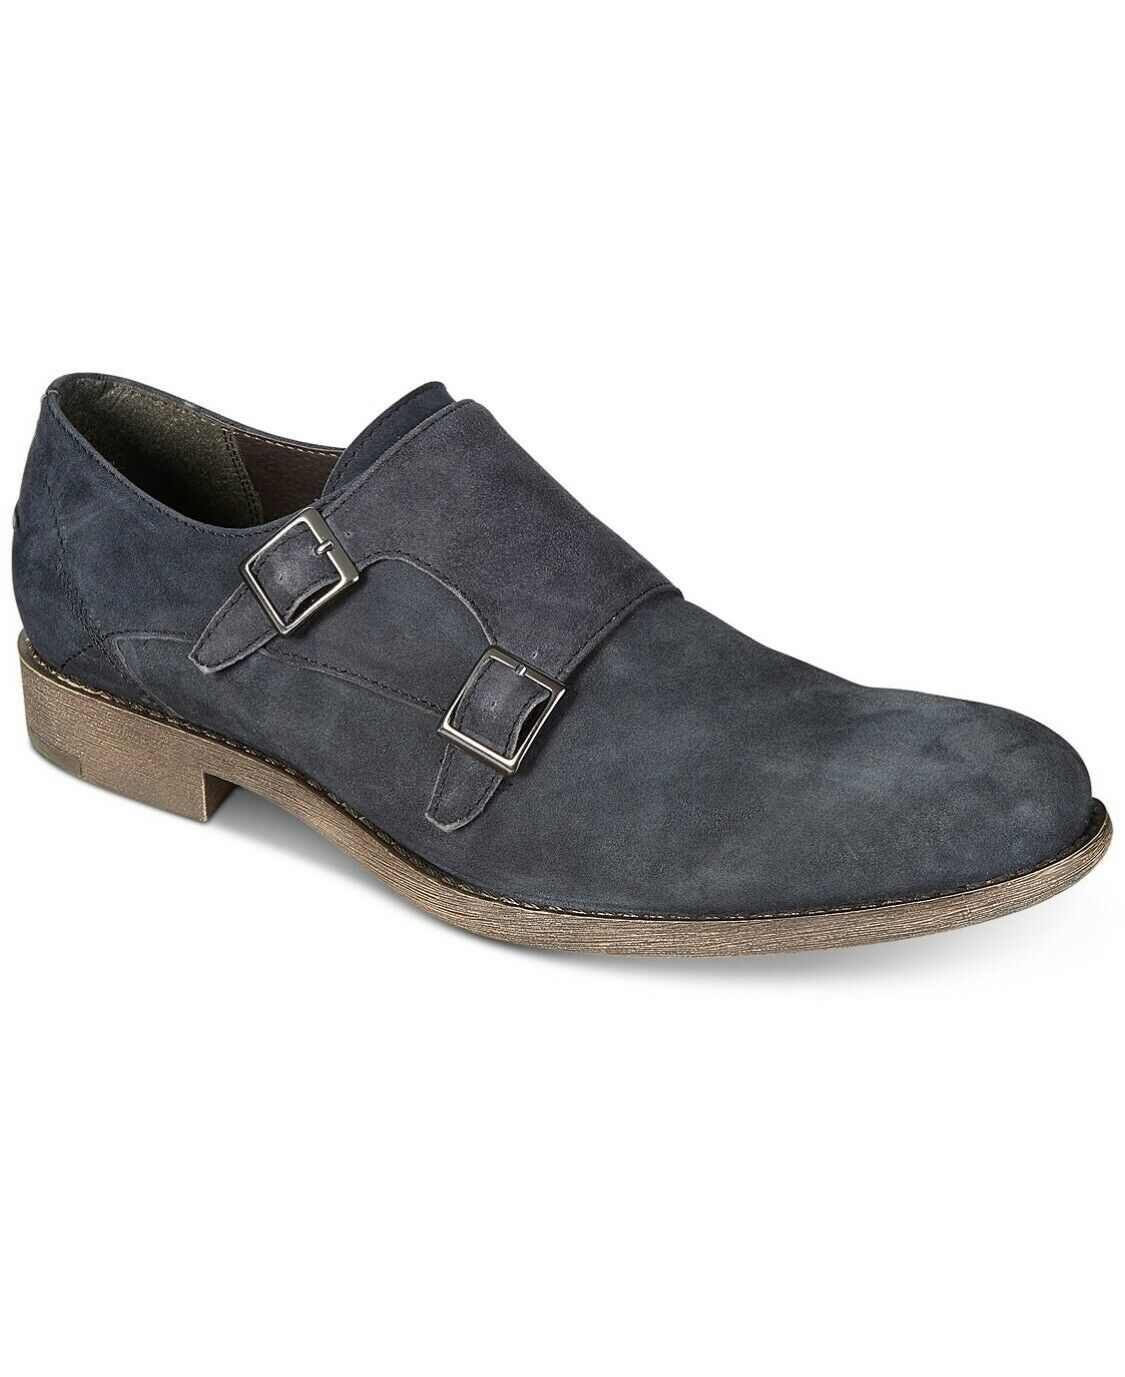 Kenneth Cole Men's Loafers Reaction Design 20644 Navy Size 11.5